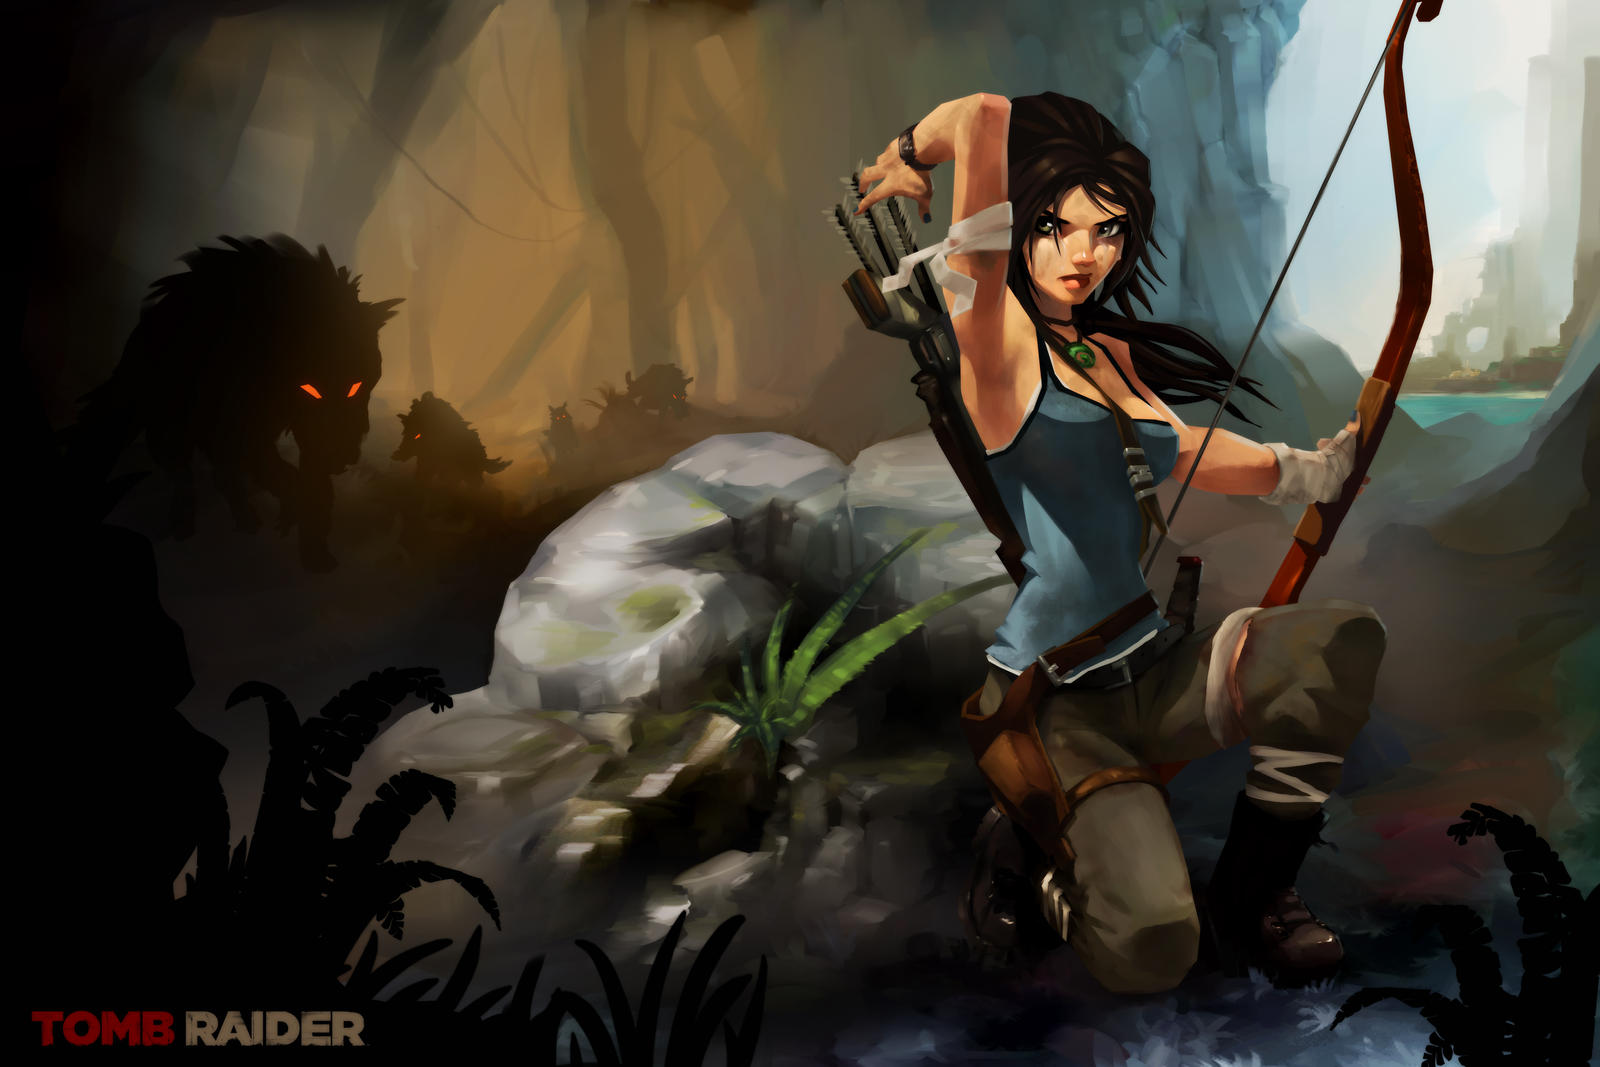 Lara Croft - Survive by RodneyOlmos